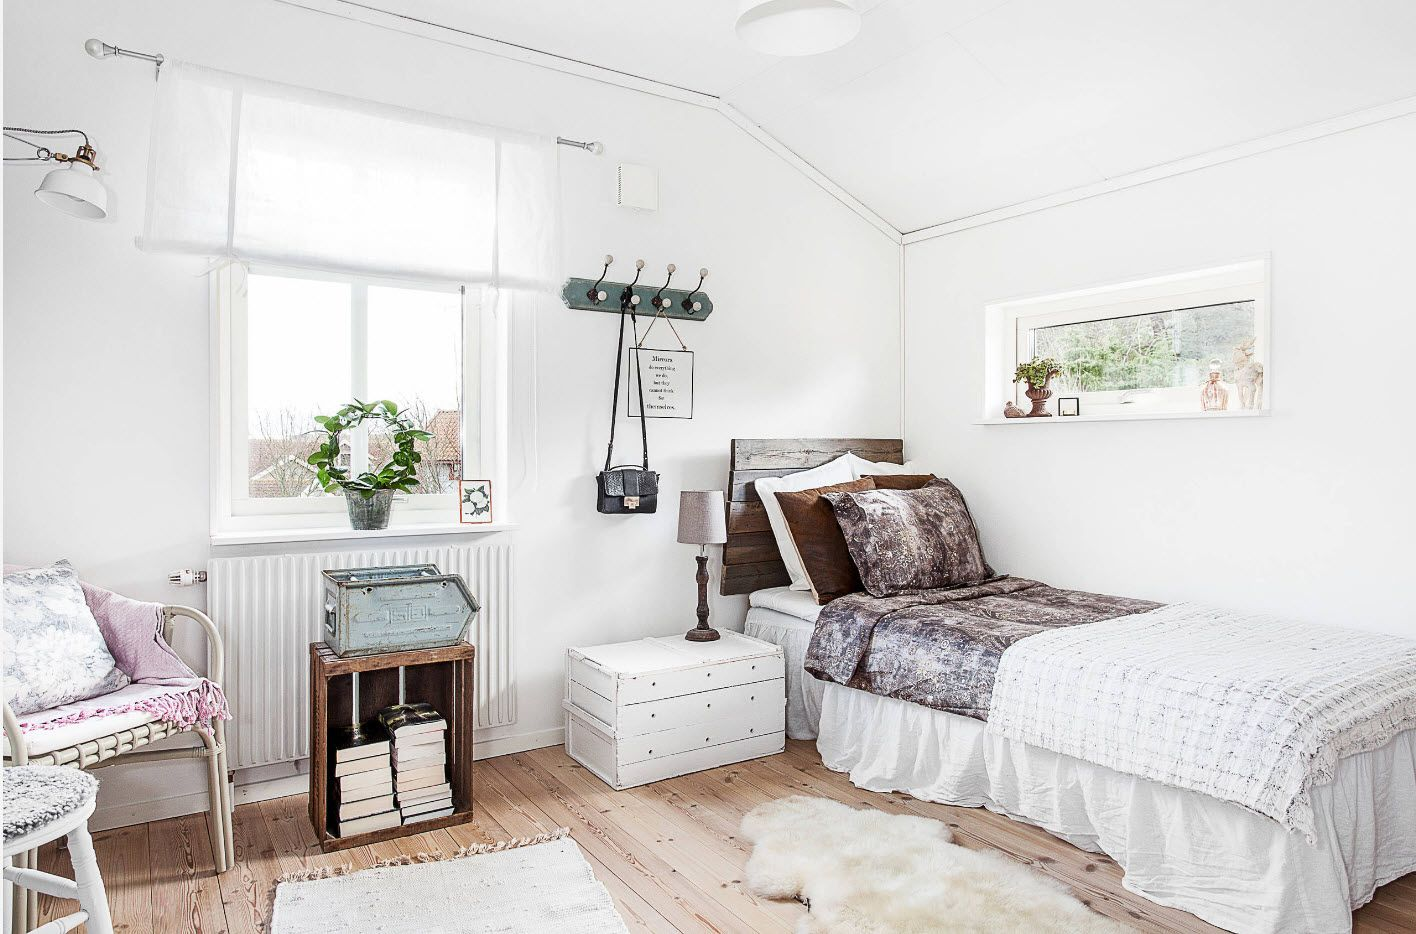 Modern Bedroom Interior Decoration & Design Ideas 2017. Typical Scandinavian style with natural motifs